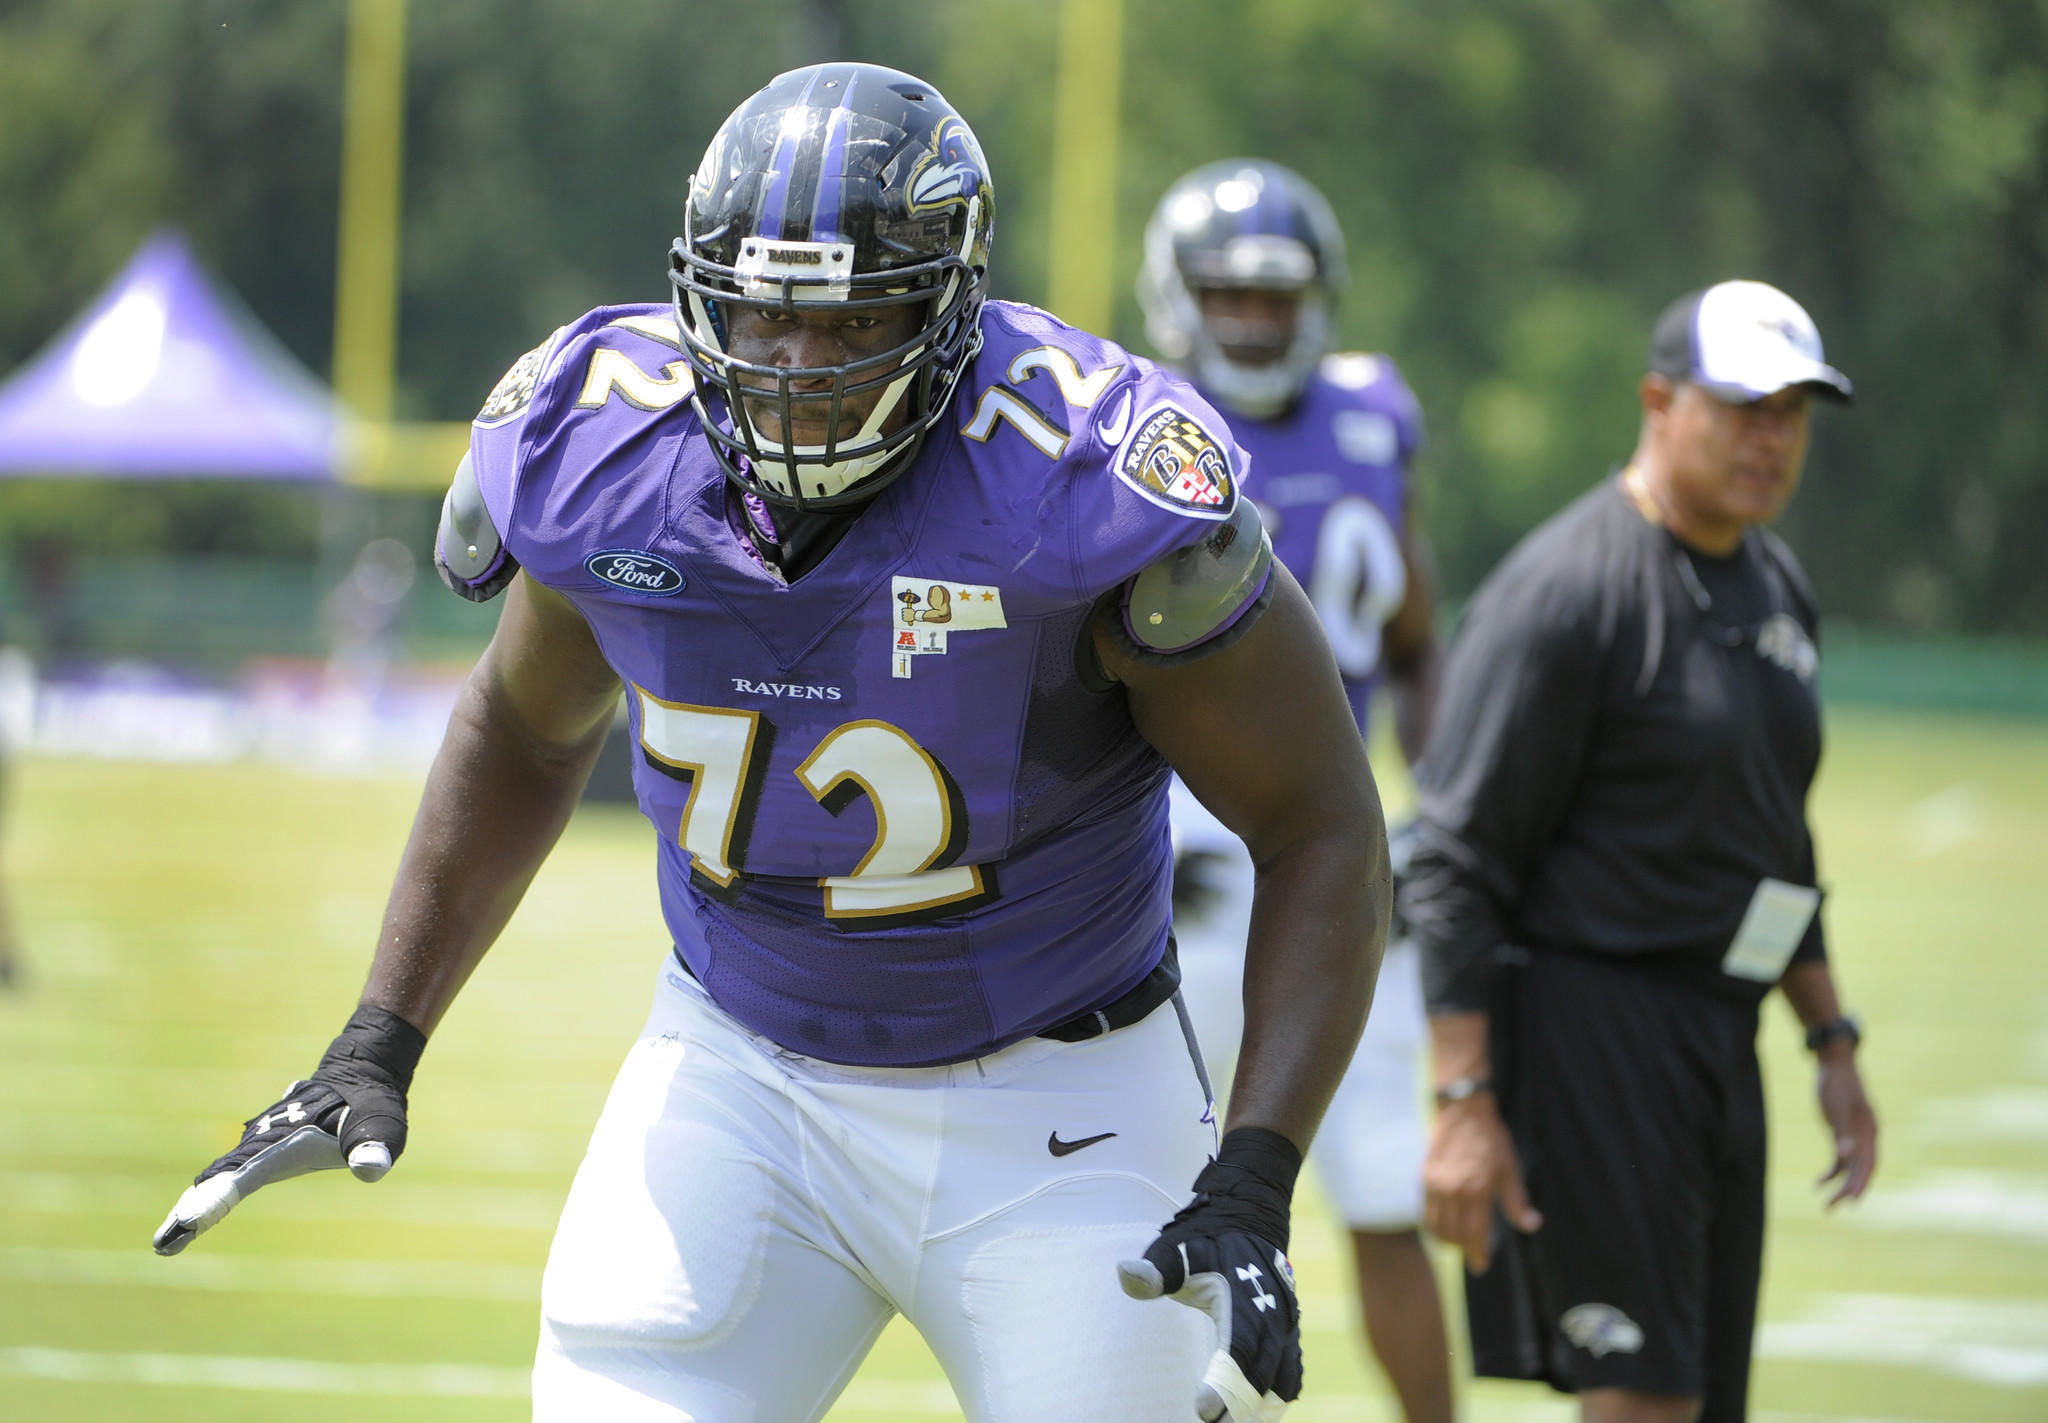 Preseason opener will have greater meaning for Ravens Kelechi